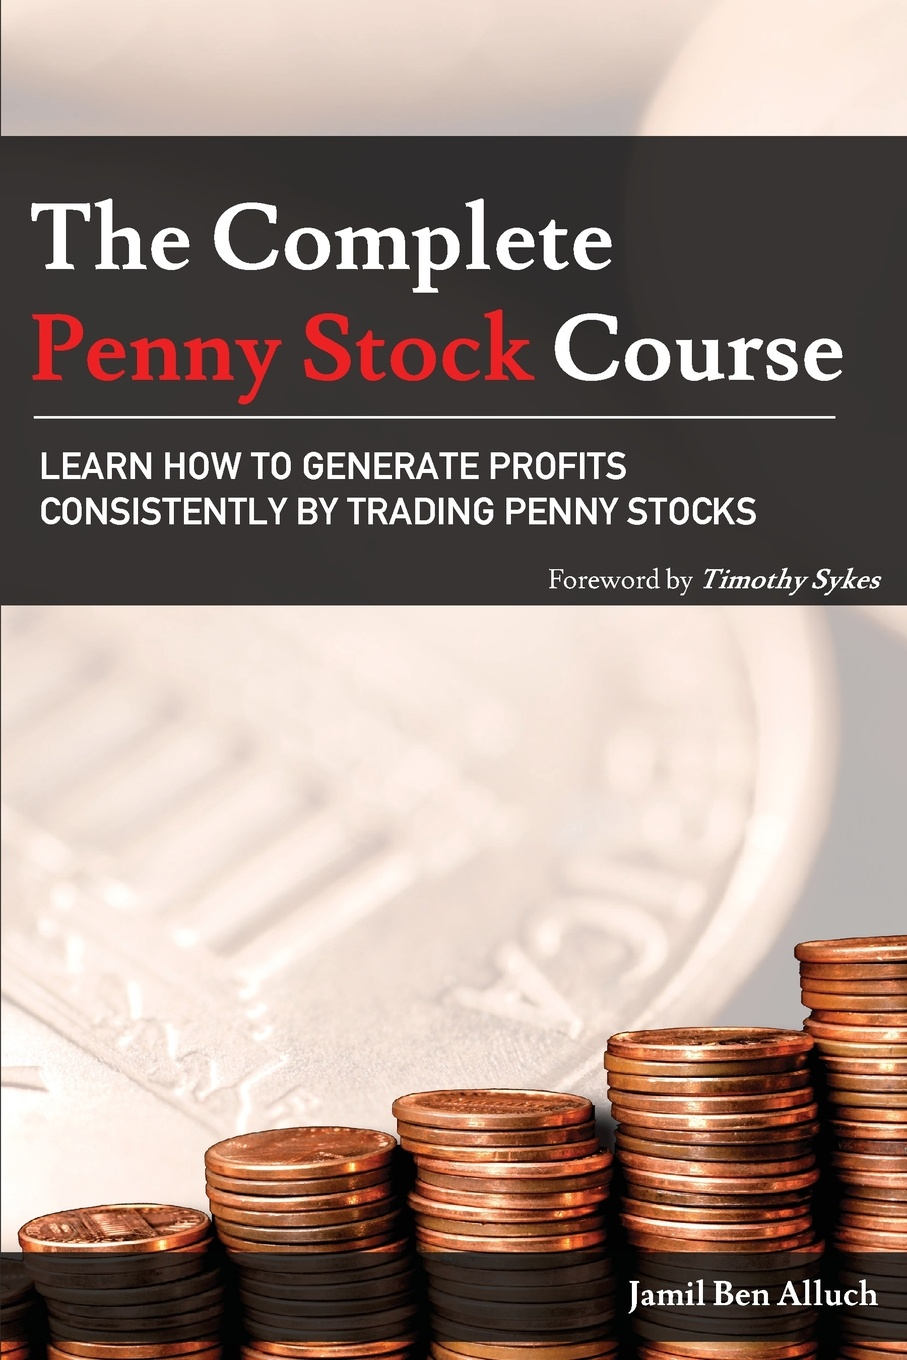 Jamil Ben Alluch The Complete Penny Stock Course. Learn How To Generate Profits Consistently By Trading Penny Stocks robert pardo the evaluation and optimization of trading strategies